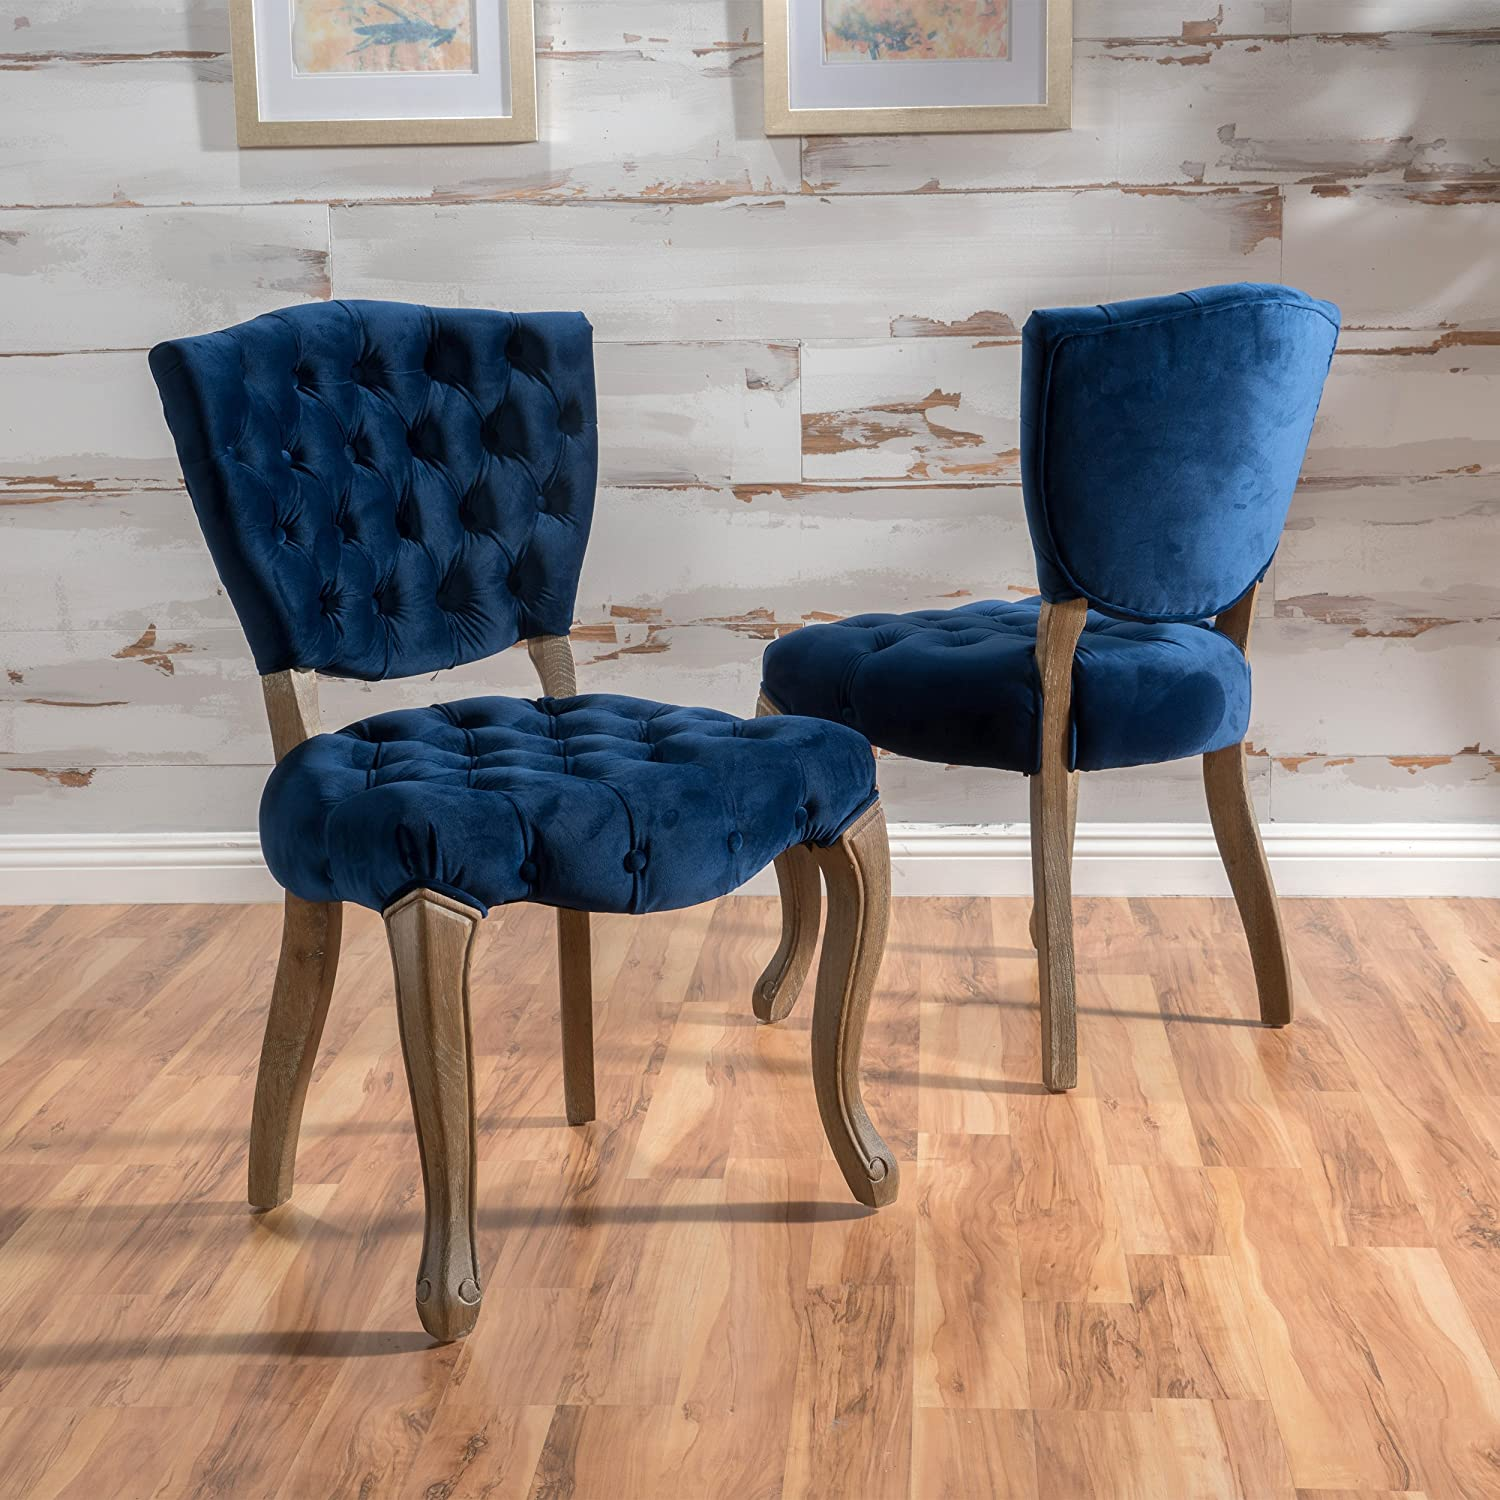 Amazon com great deal furniture duke tufted navy blue velvet dining chairs set of 2 chairs